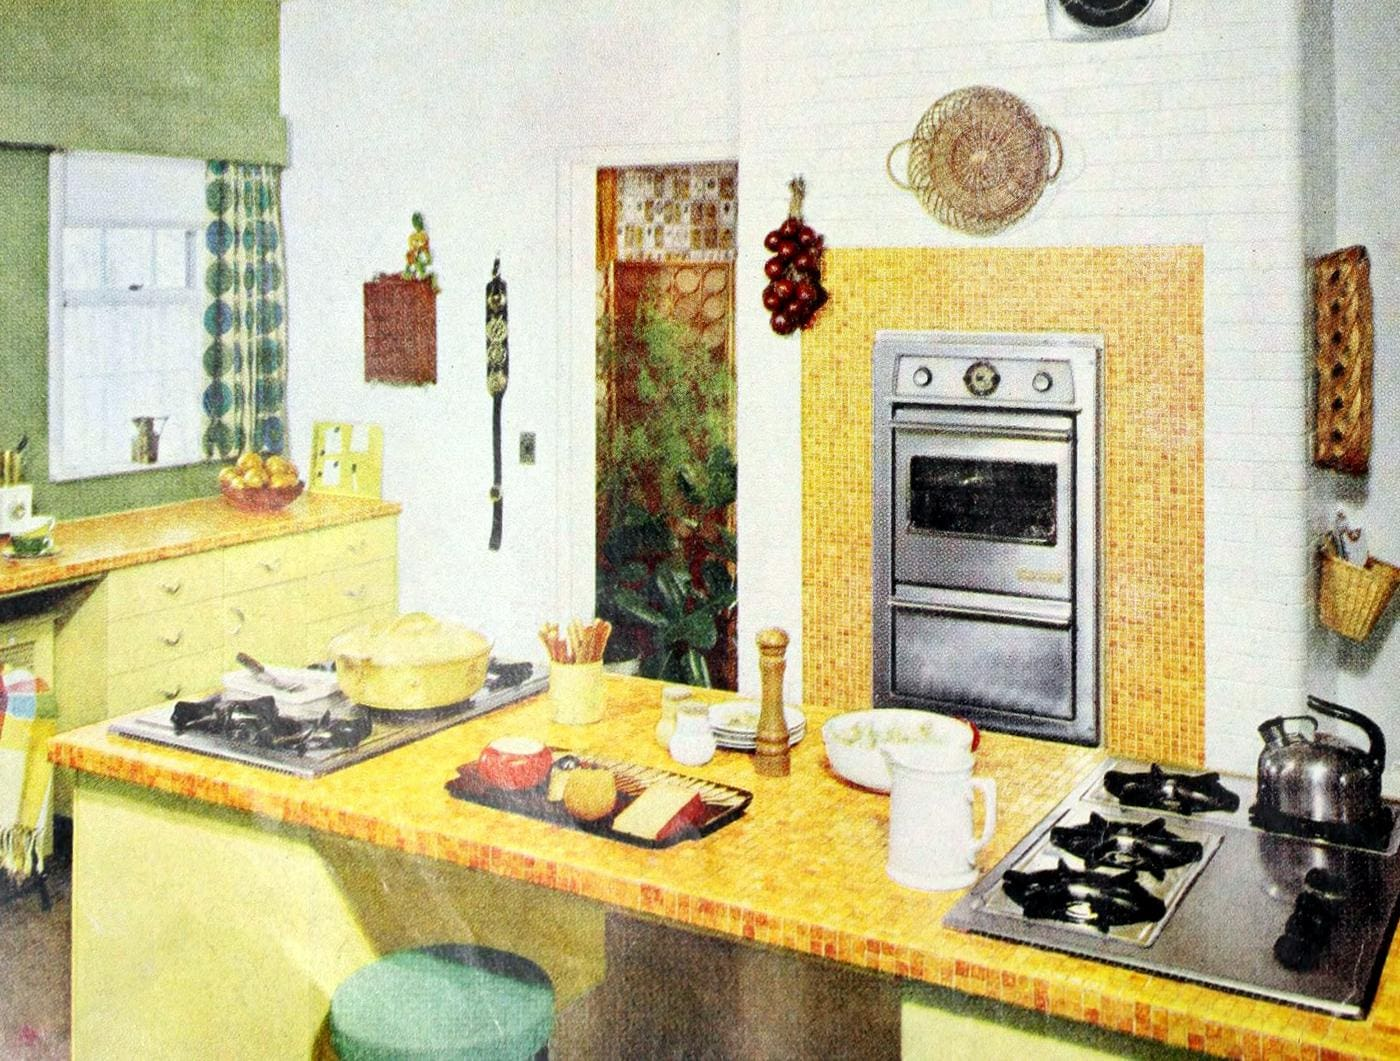 Old-fashioned yellow kitchen countertops and decor from the 50s